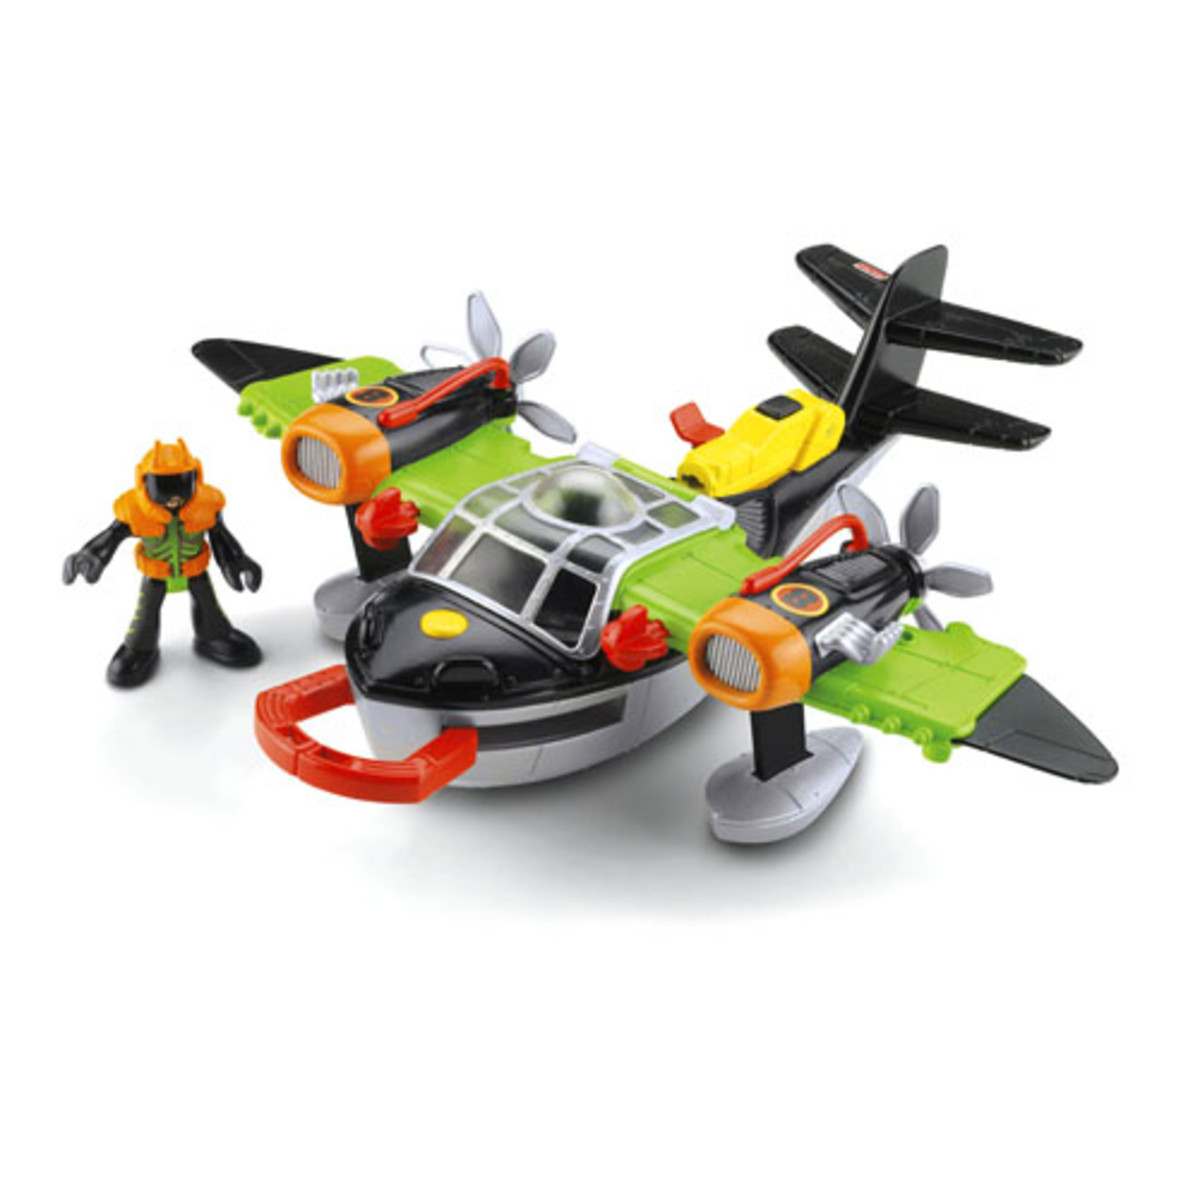 Imaginext Wind Scorpion by Fisher Price